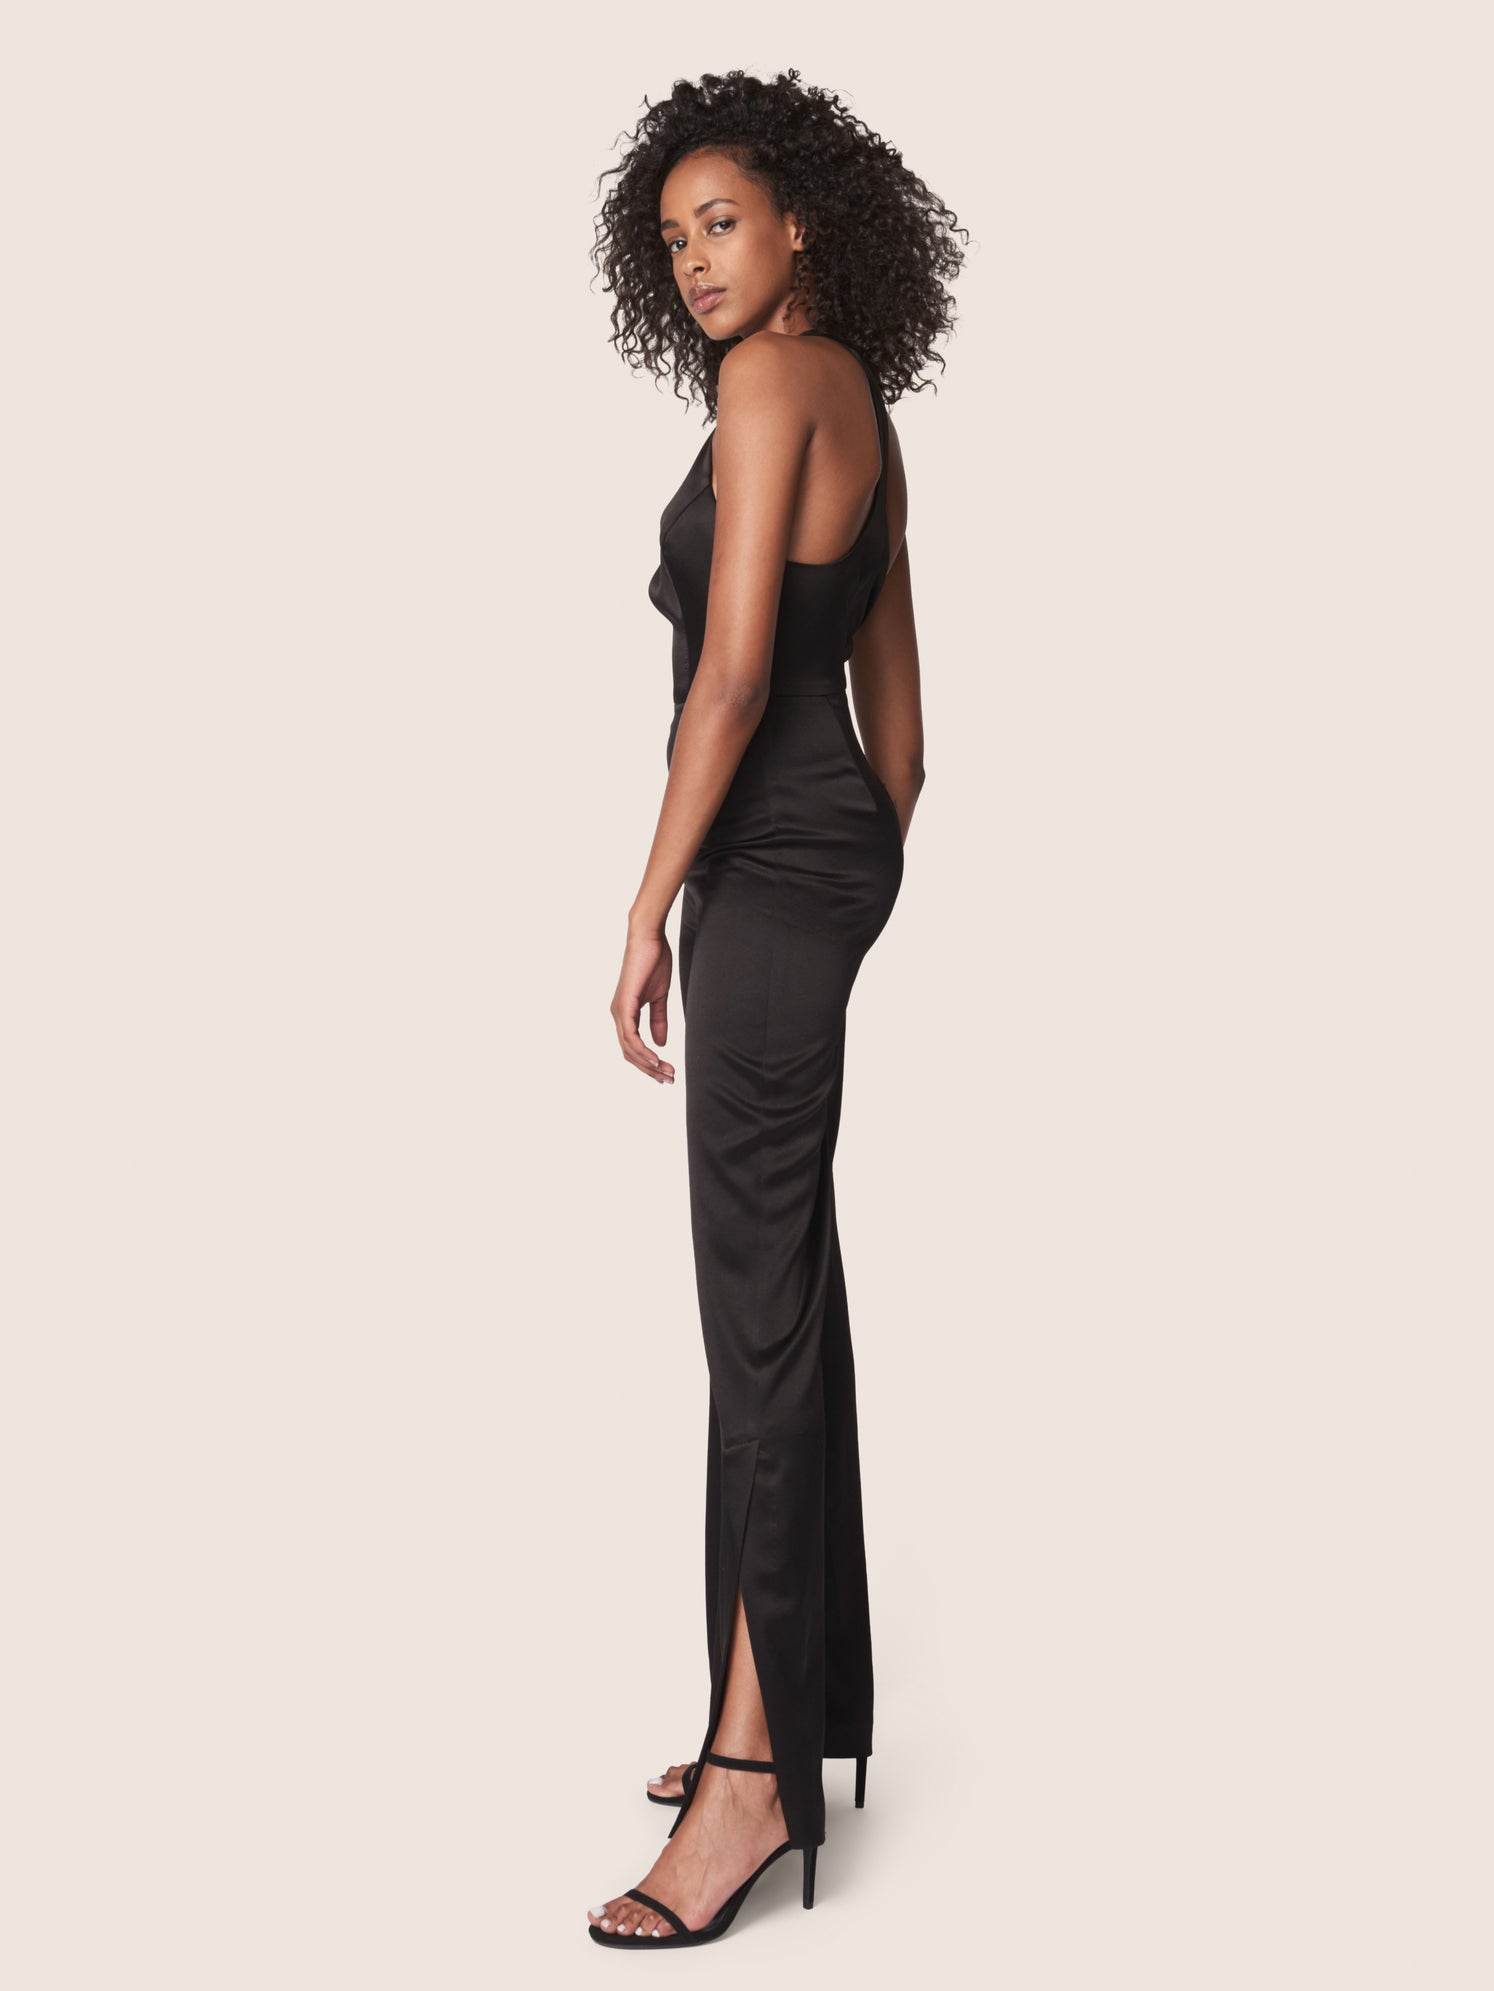 Black satin jumpsuit with deep v-neckline and racerback